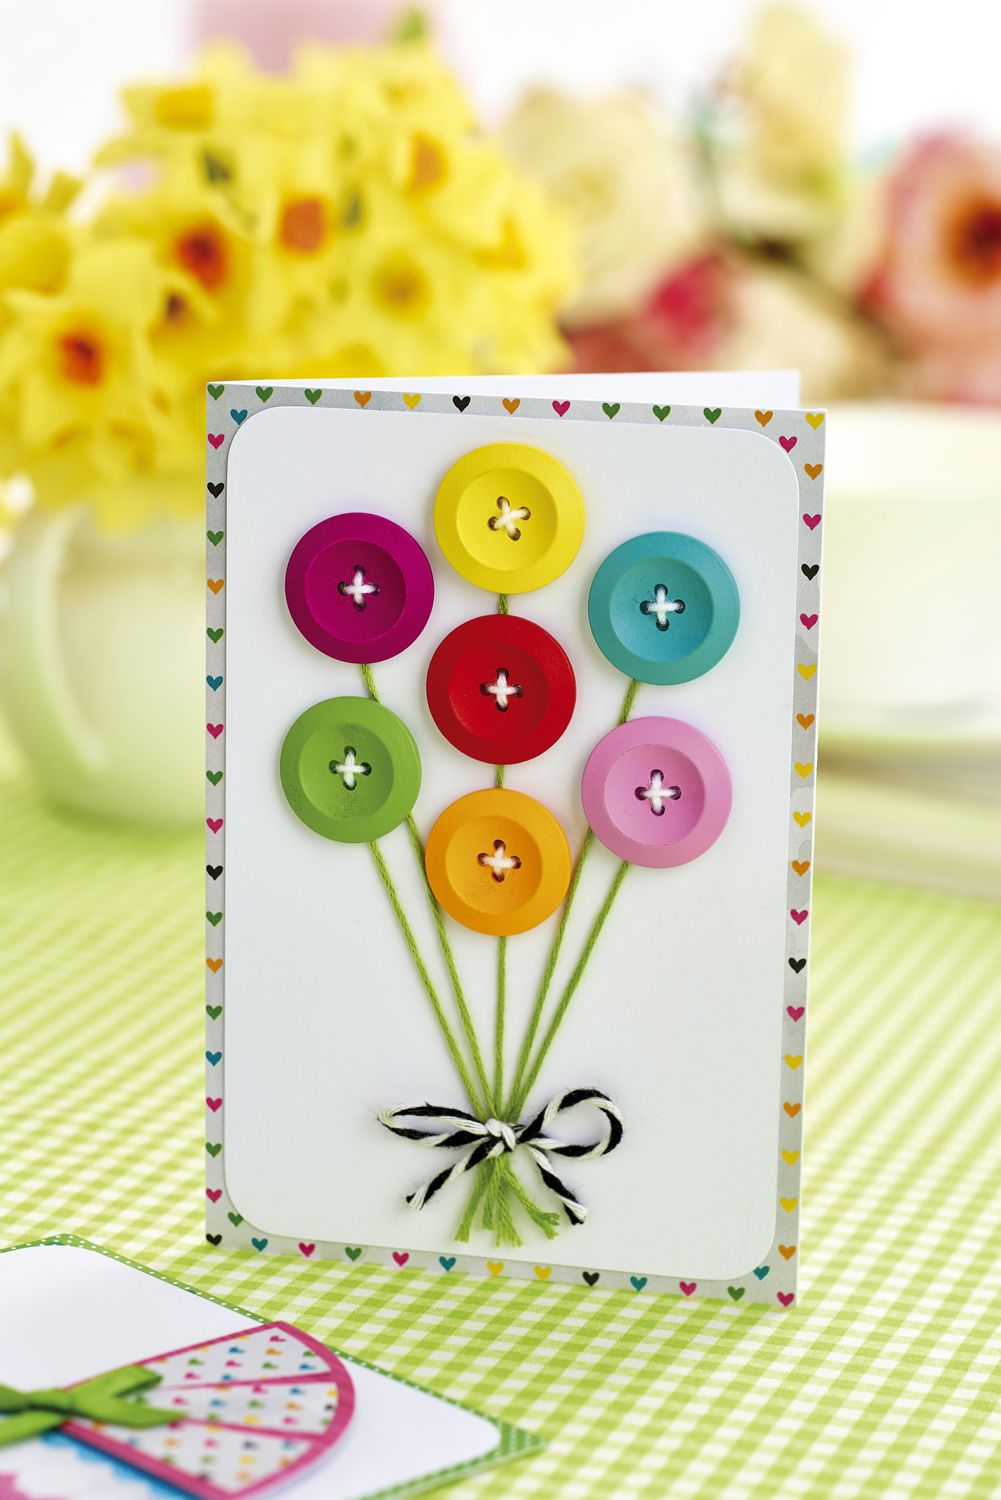 Make Cards Featuring Buttons In Our April Issue Out Now Pic Cliqq Co Uk Handmade Birthday Cards Birthday Card Craft Cards Handmade